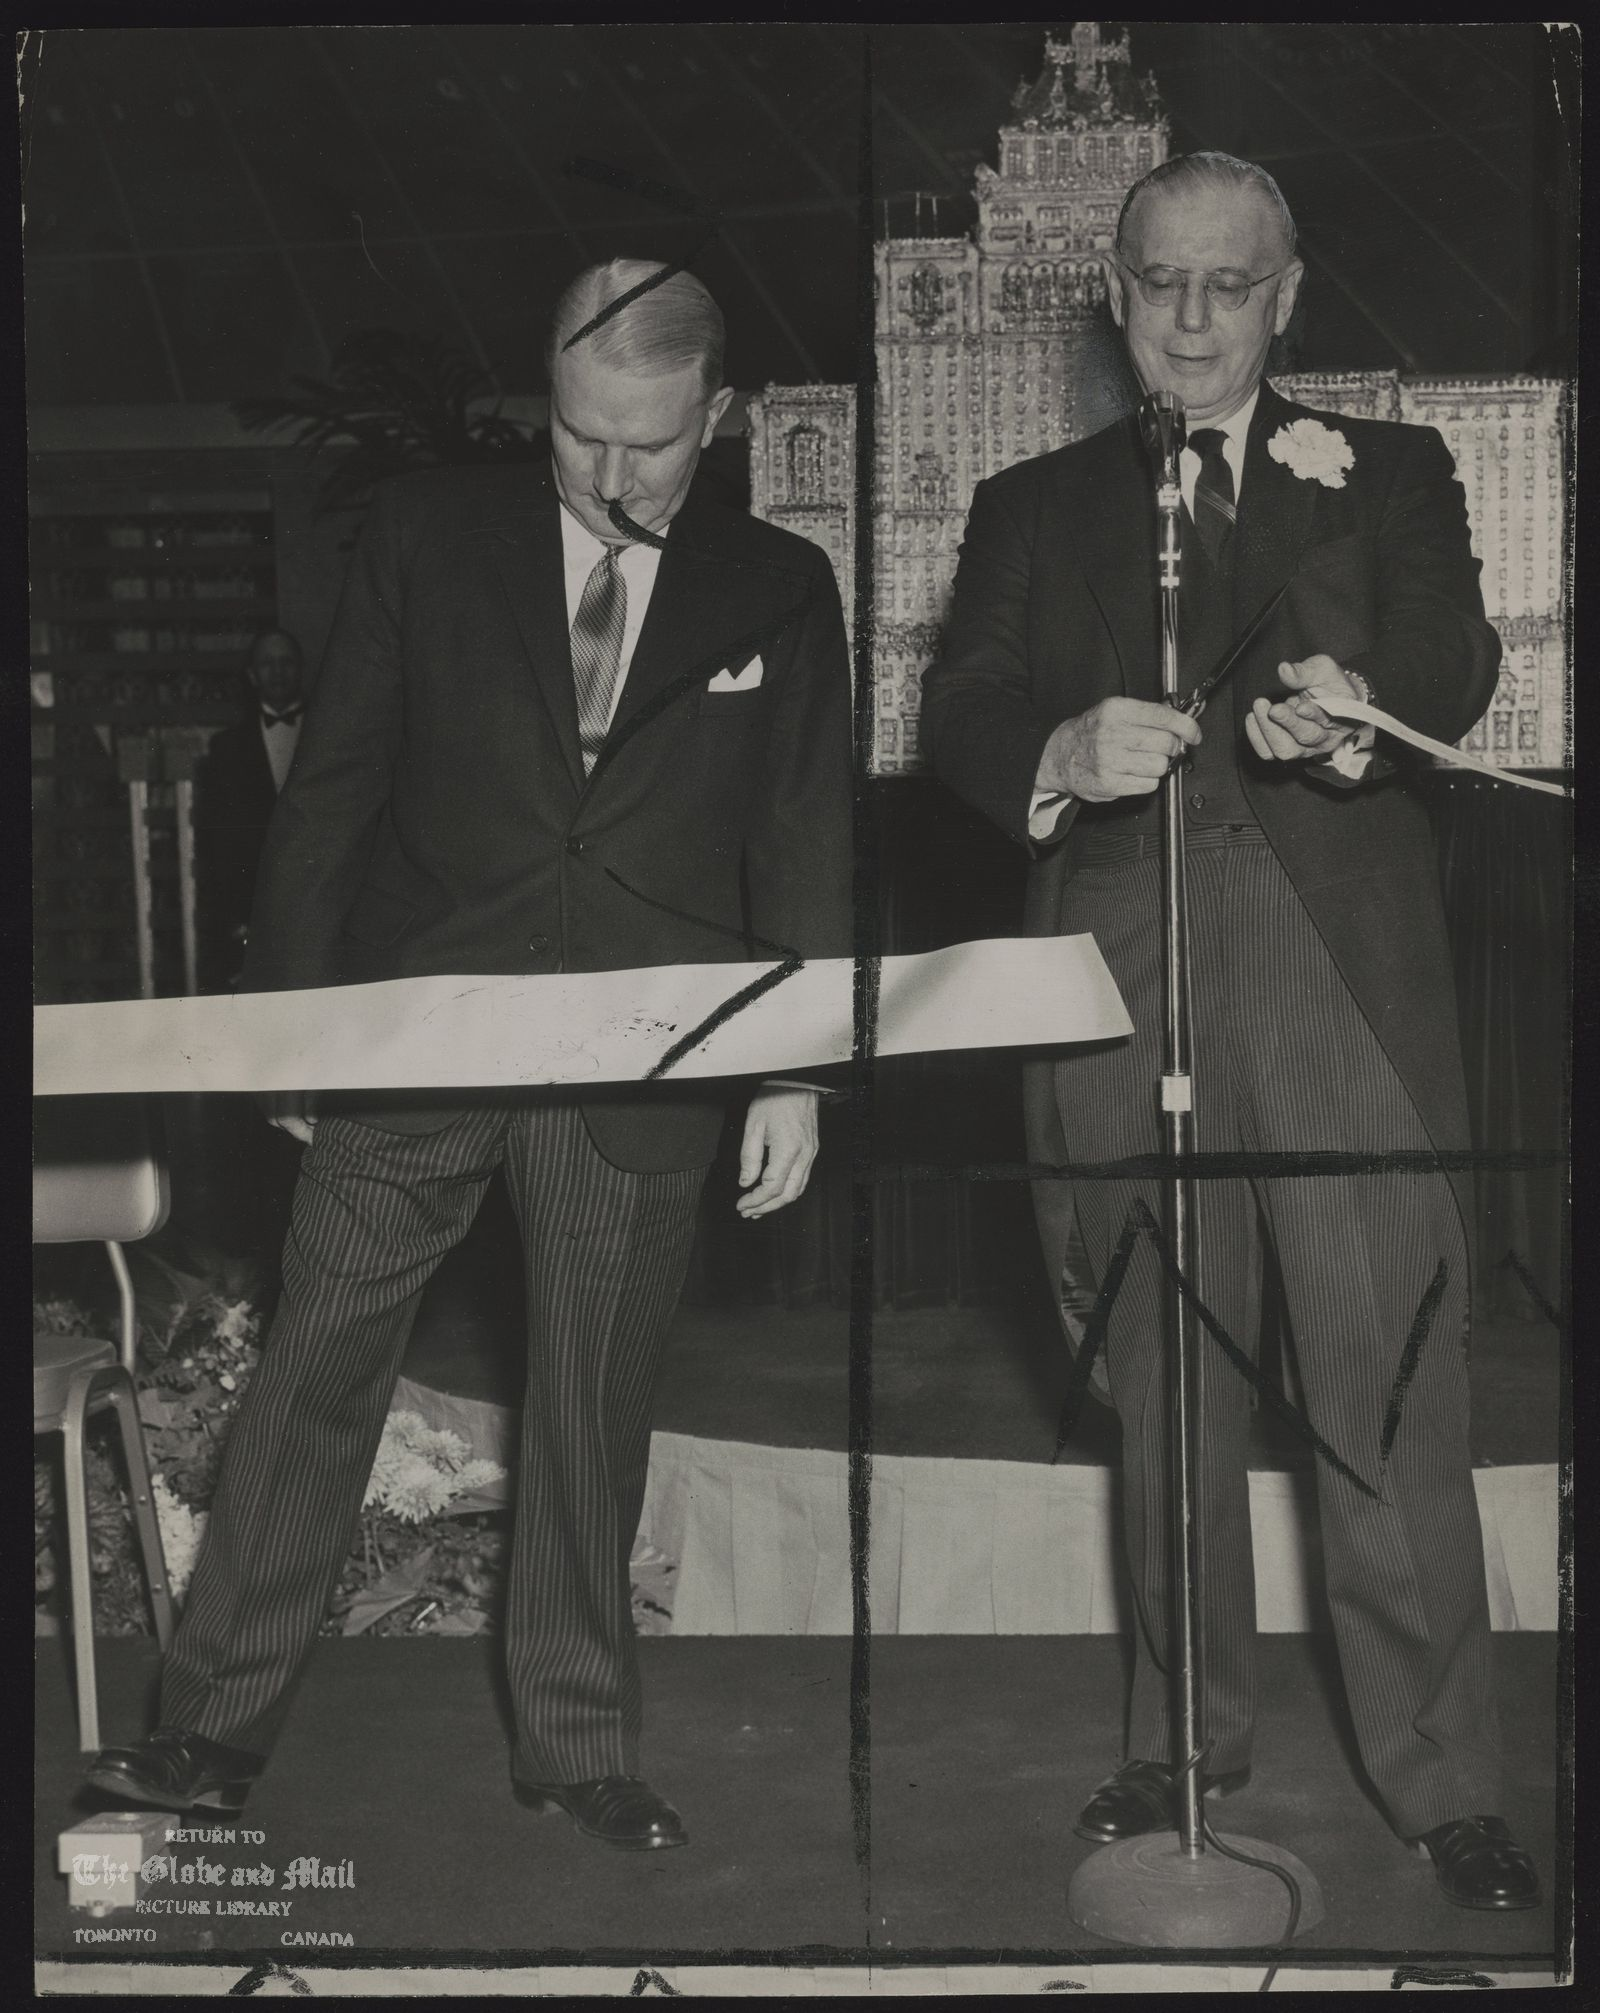 ROYAL YORK HOTEL. Premier Frost cuts ribbon at opening. The Royal York has regained the title of the largest hotel in the British Common-wealth with the opening of the $14,000,000 addition.